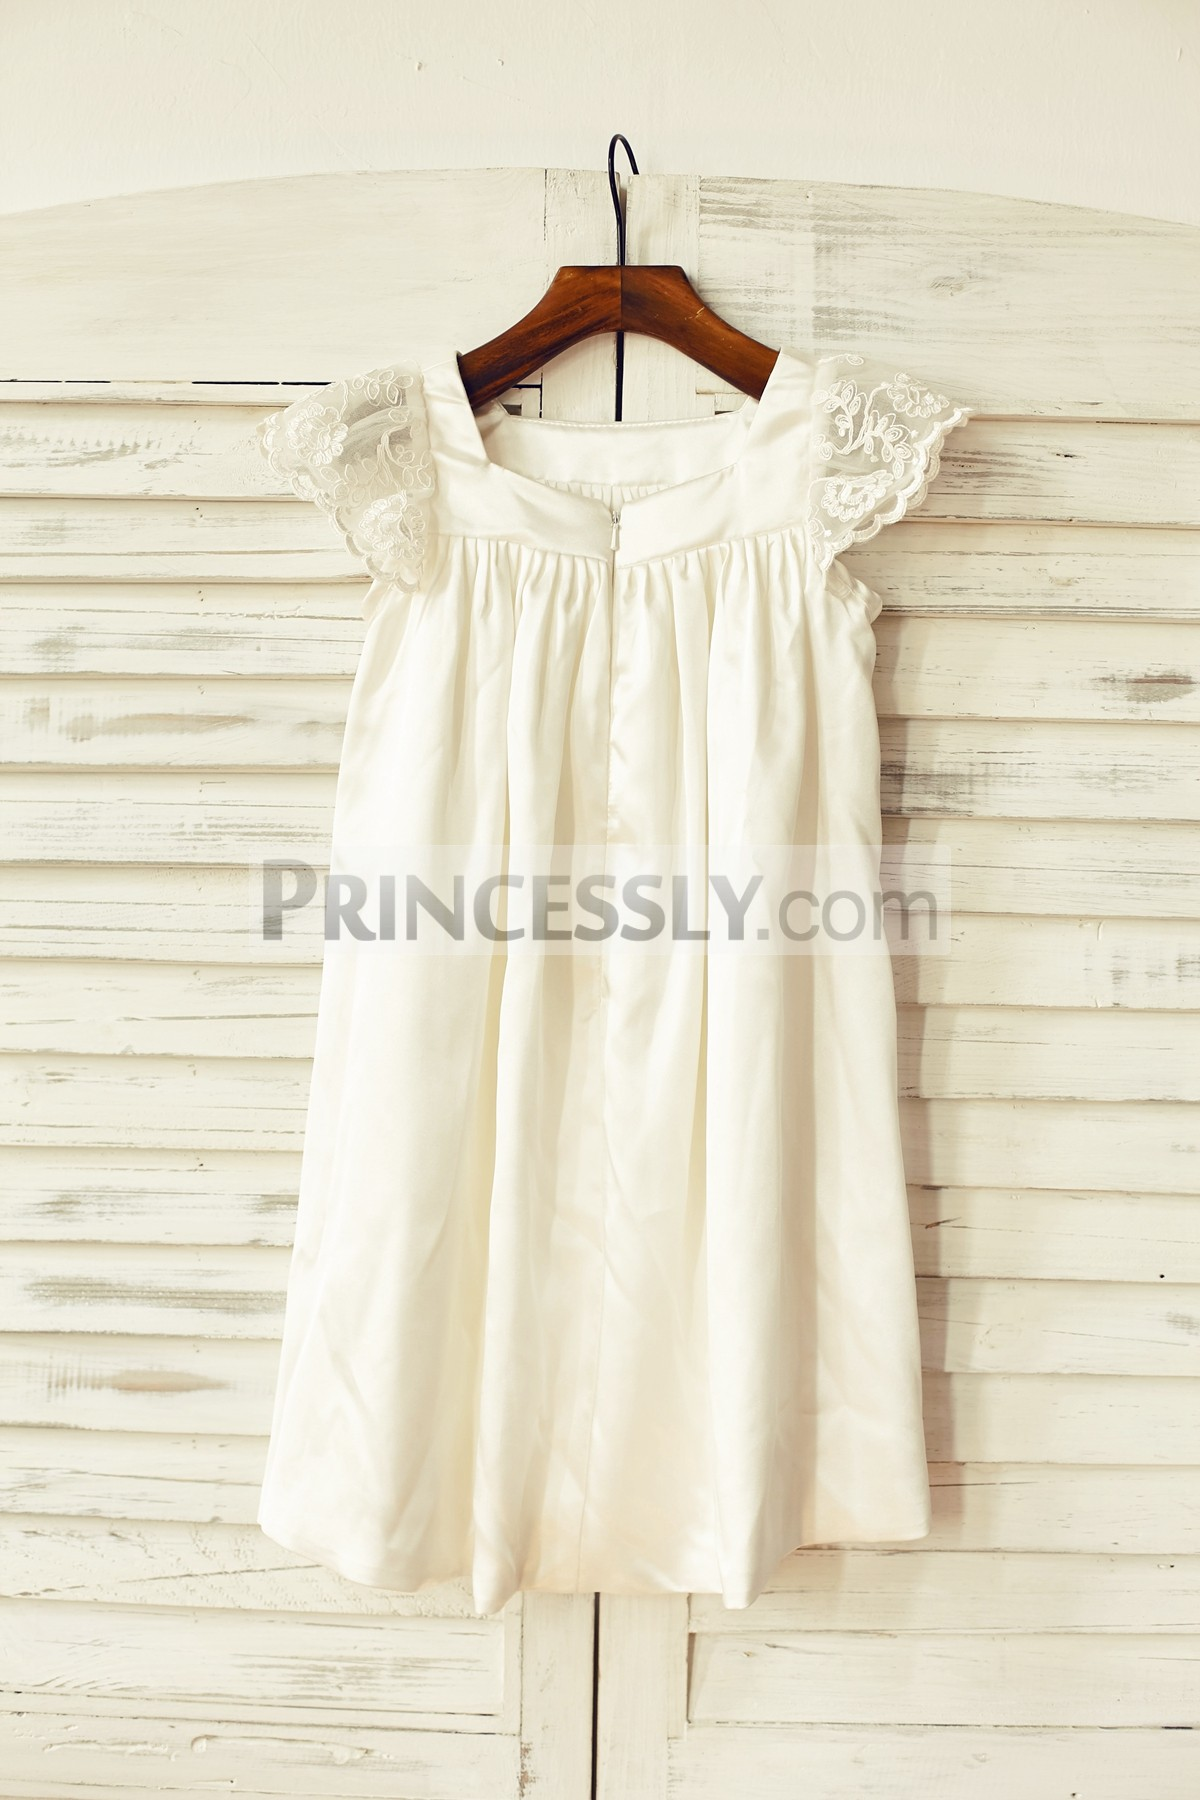 Satin Ivory Flower Girl Dress